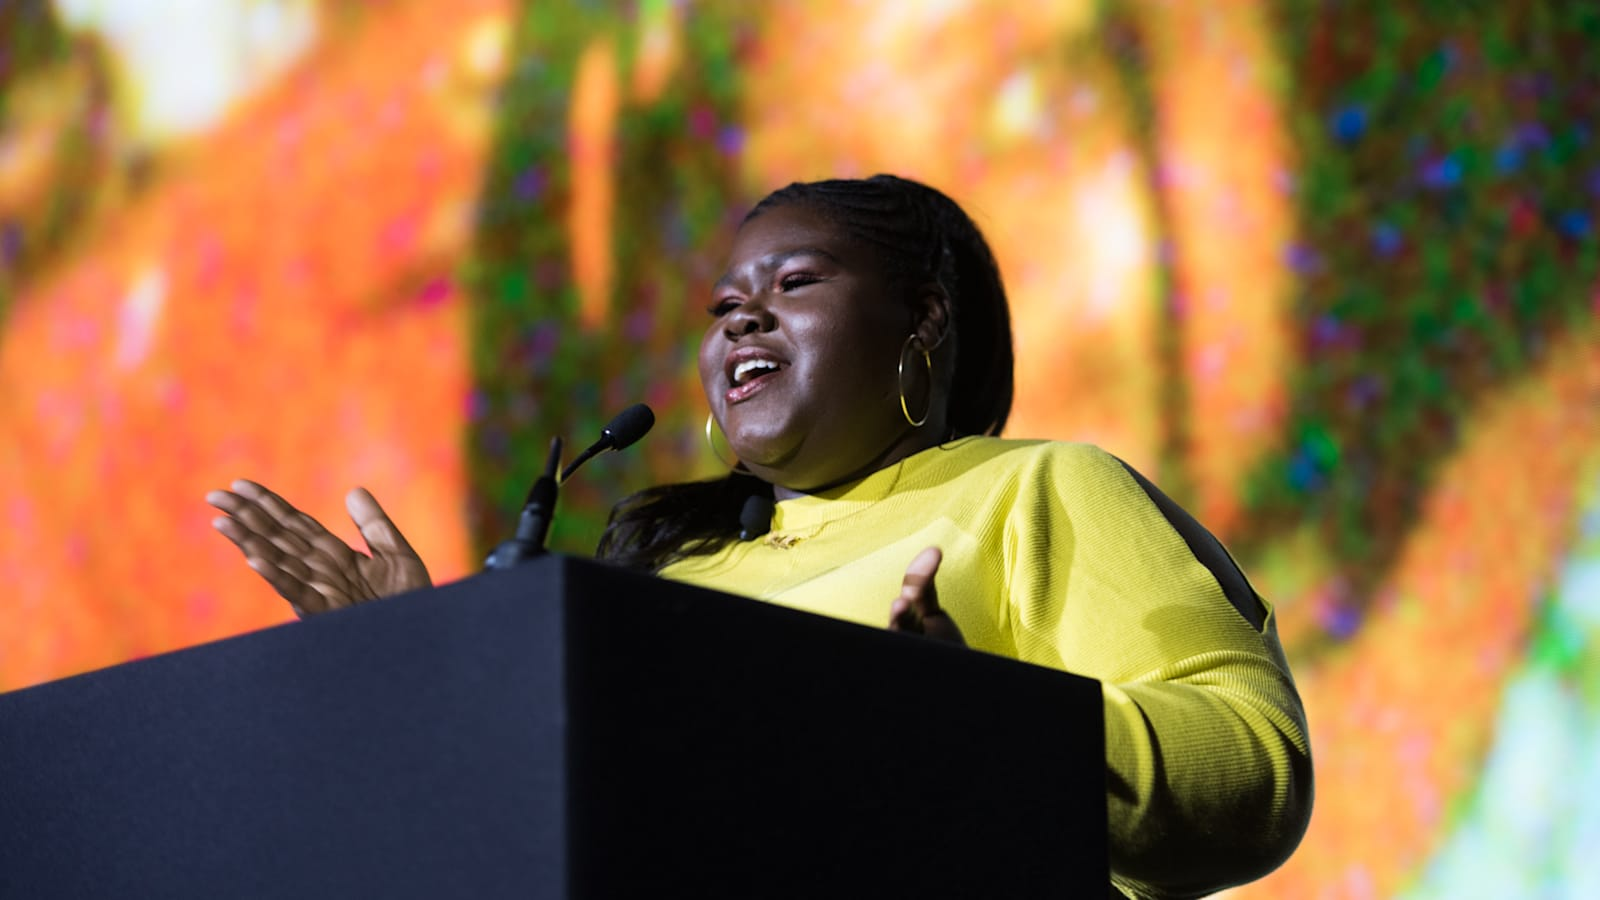 Gabourey Sidibe: I Show Up When Others Might Be Ashamed